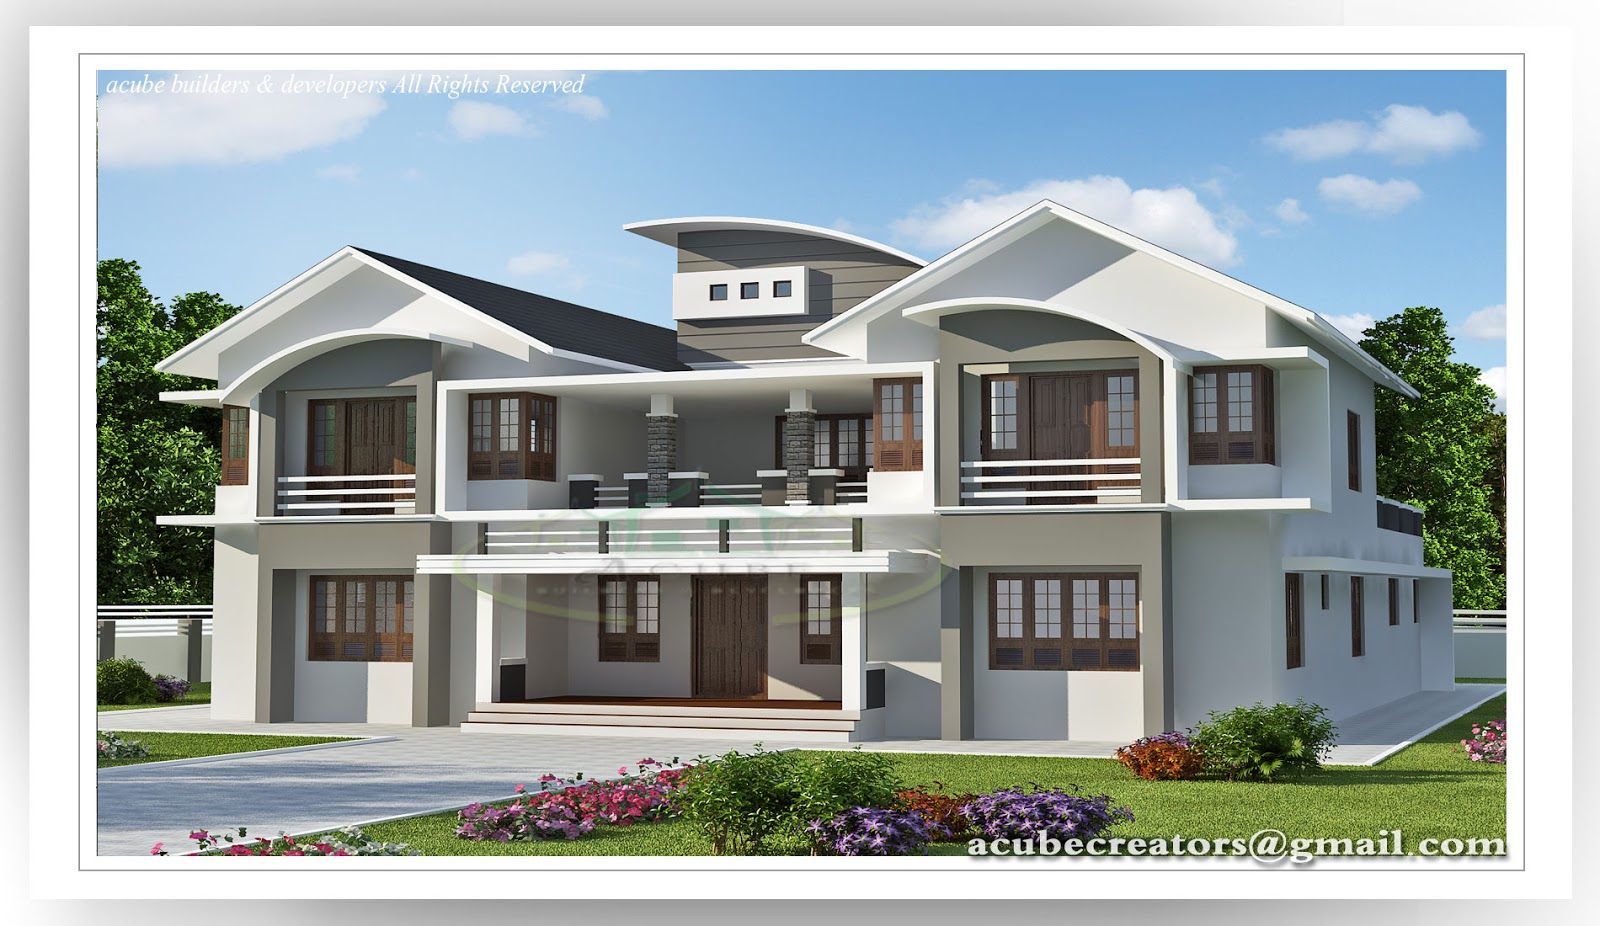 6 bedroom luxury villa design 5091 plan 149 for 5 bedroom house designs uk